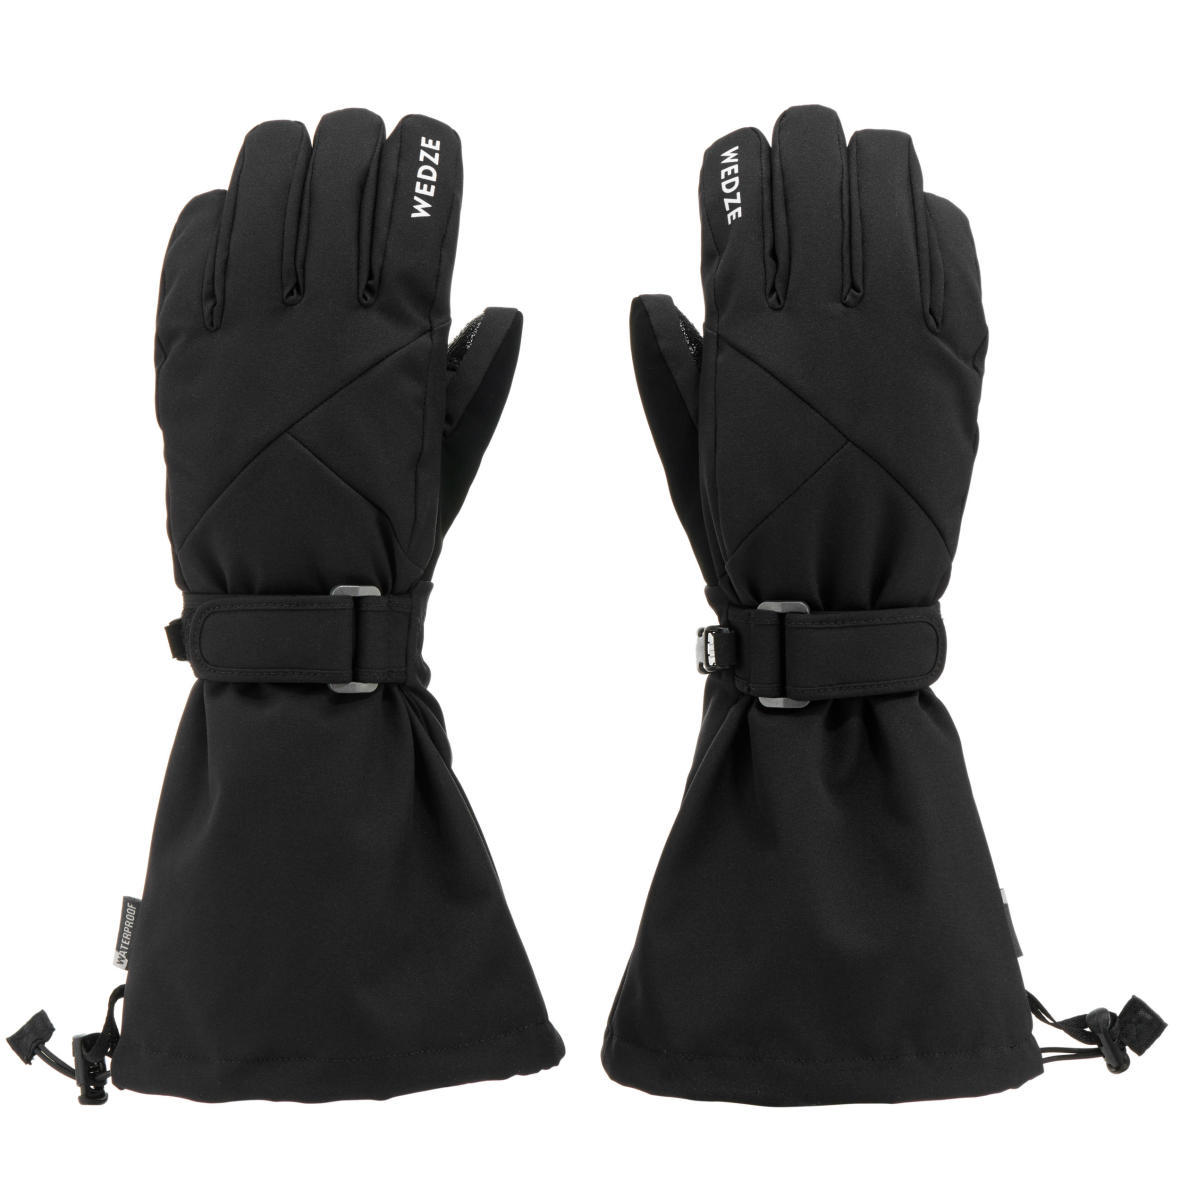 gants-ski-junior.jpg